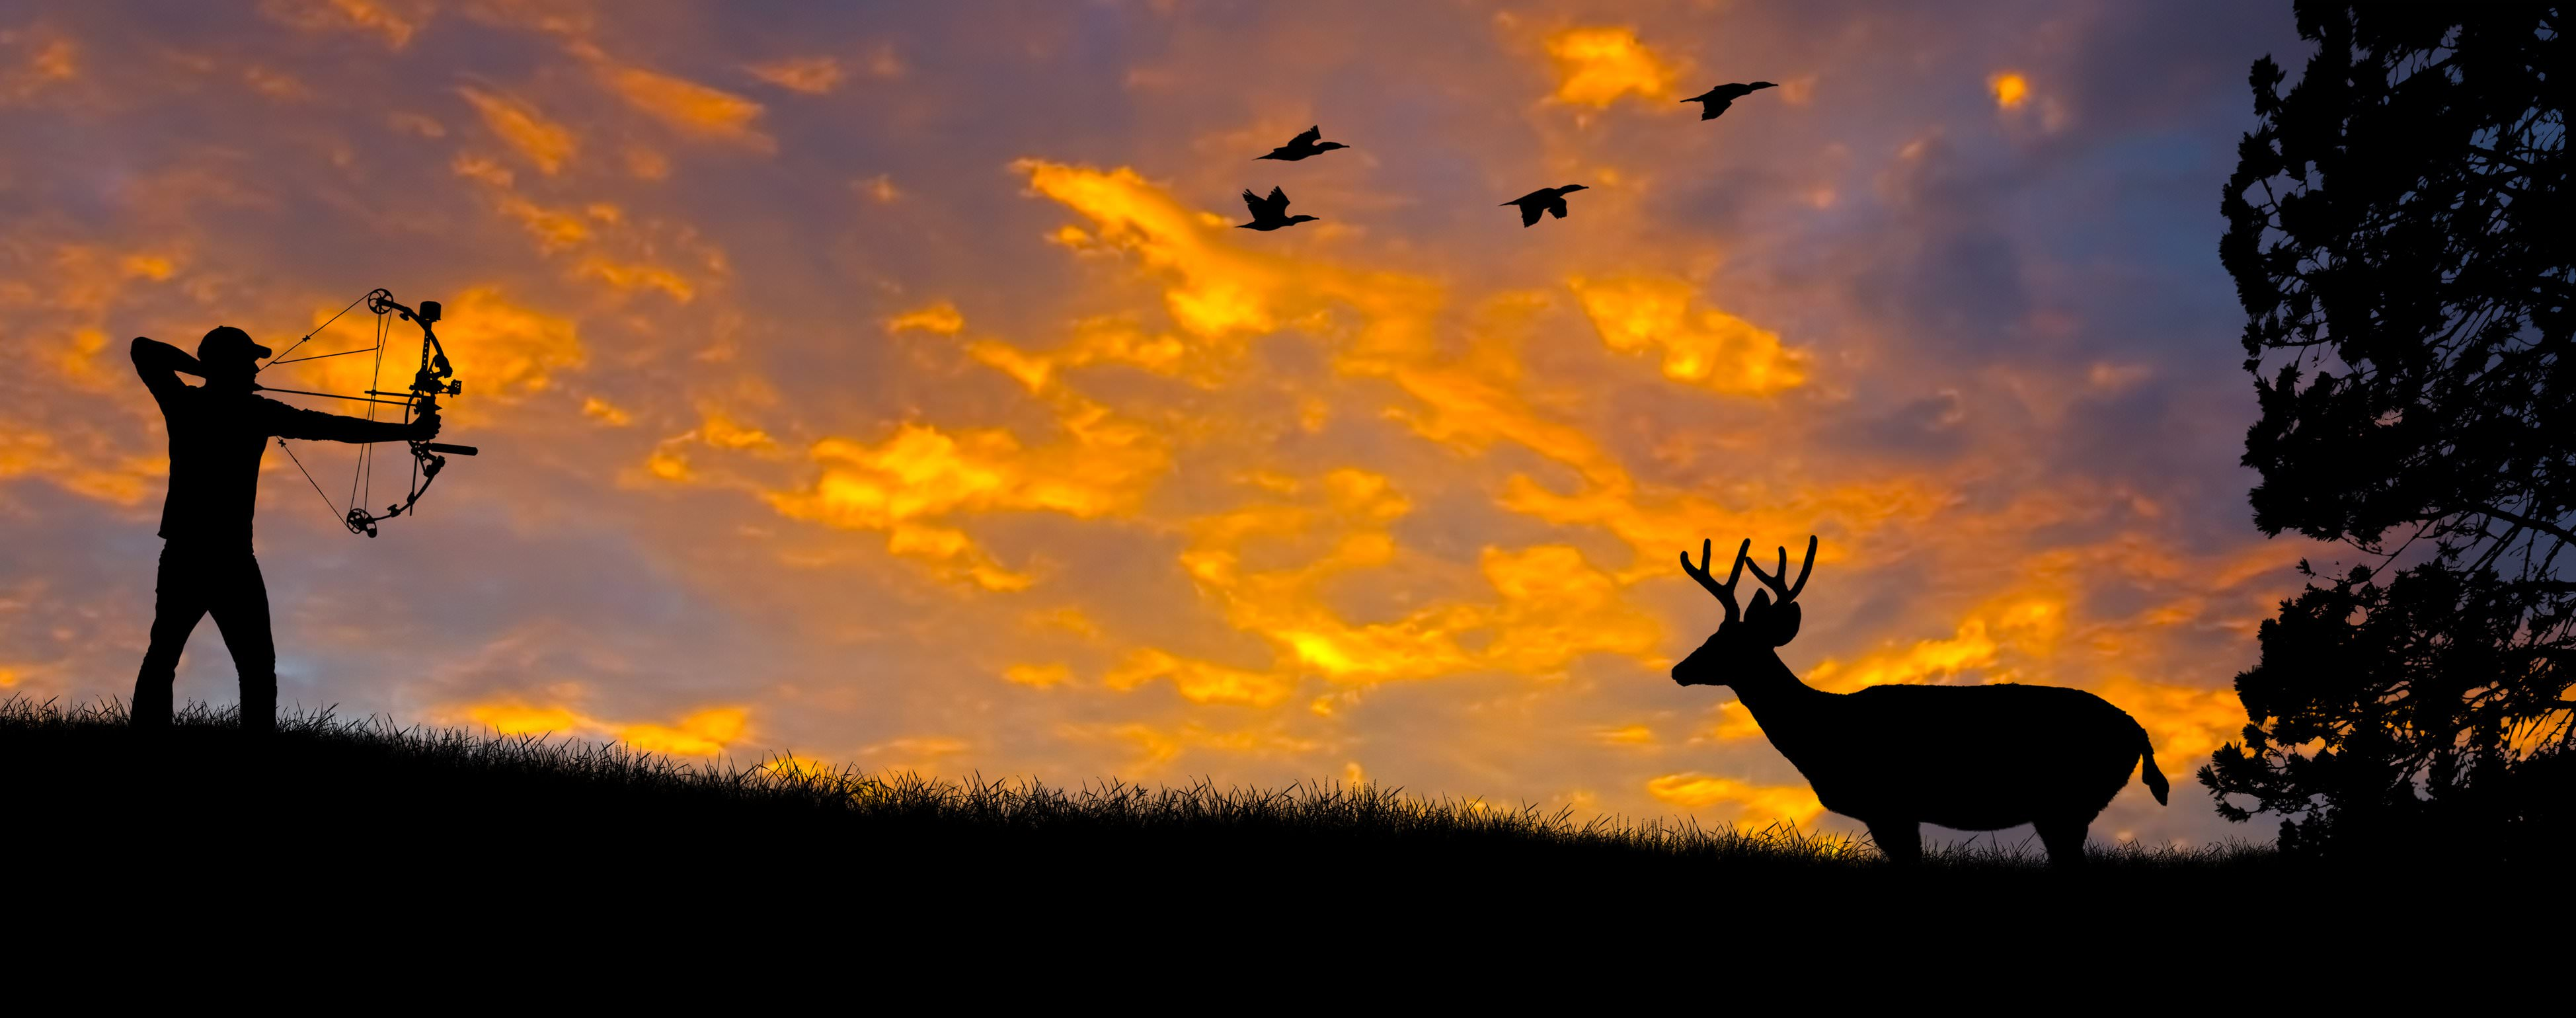 Deer Hunting Background3